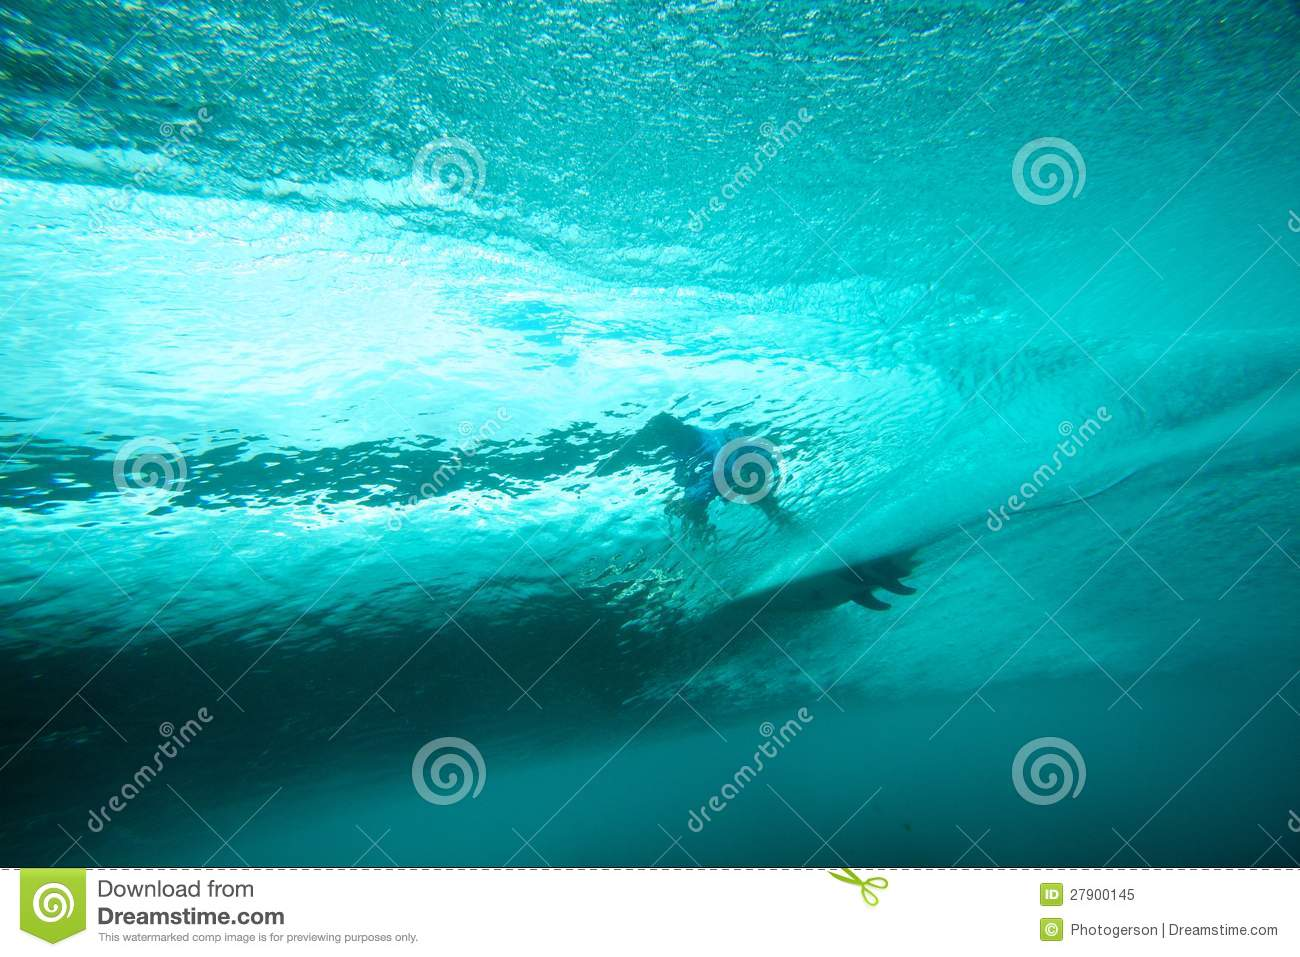 Images for clear underwater vision